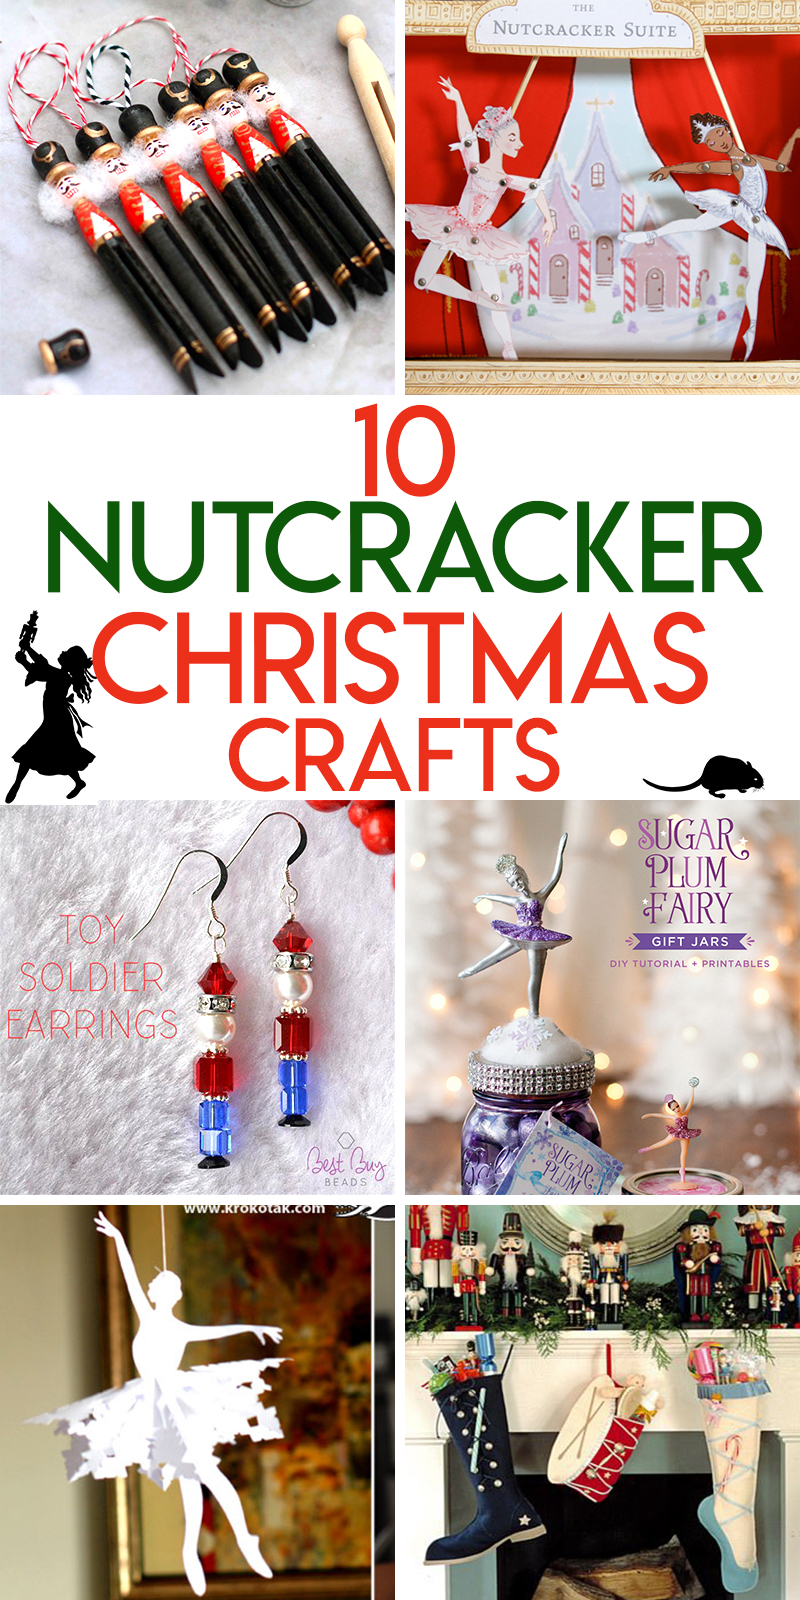 10 Magical nutcracker themed Christmas crafts